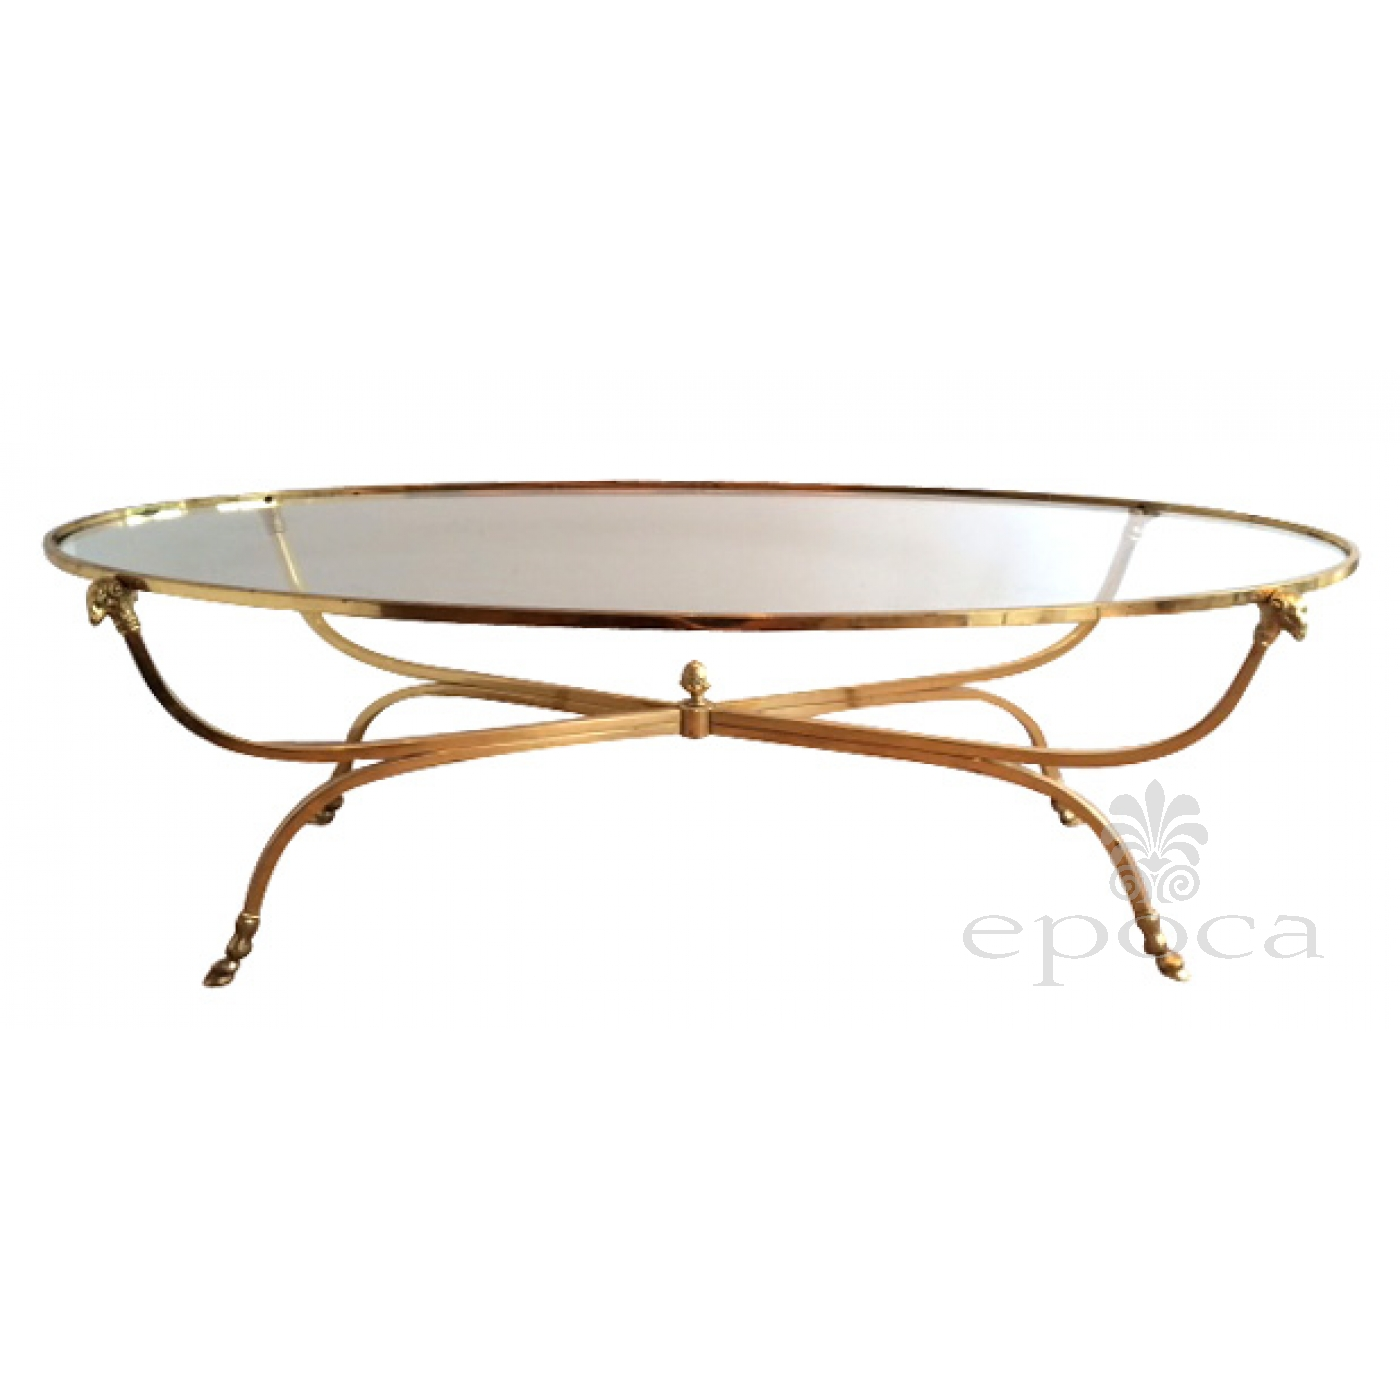 A Stylish And Good Quality French Mid Century Modern Br Oval Coffee Table With Gl